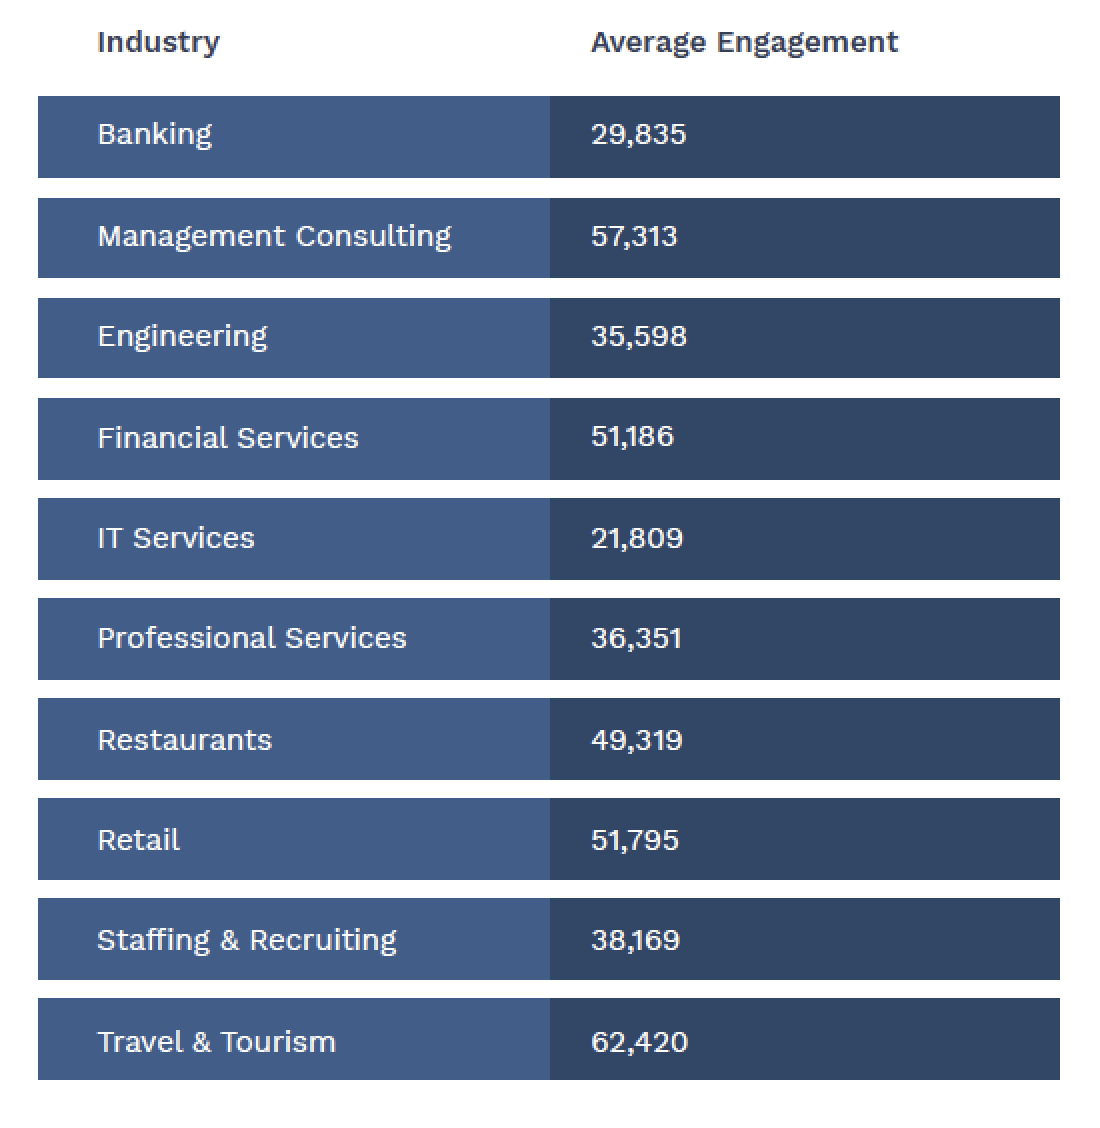 Industry and average engagement